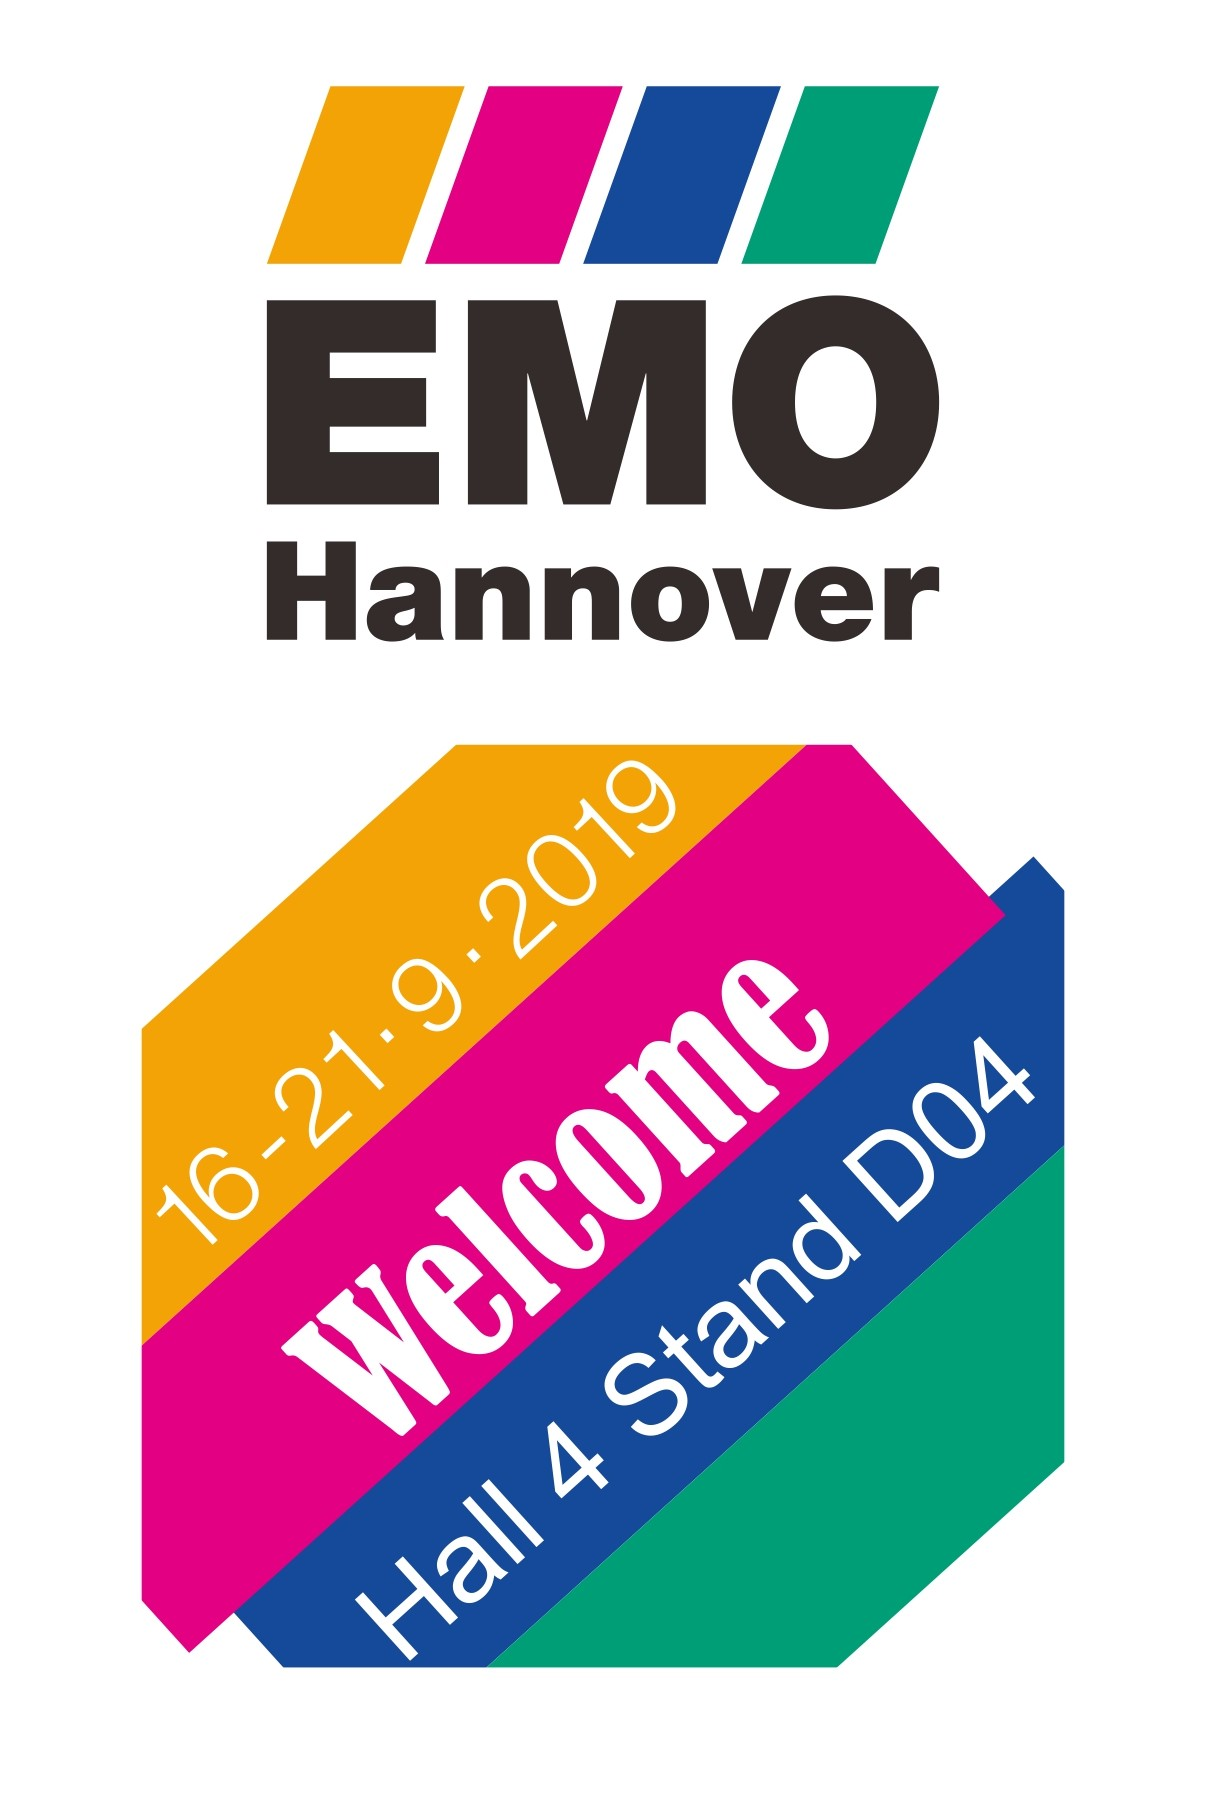 EMO Hannover 2019 with Echaintool from Taiwan